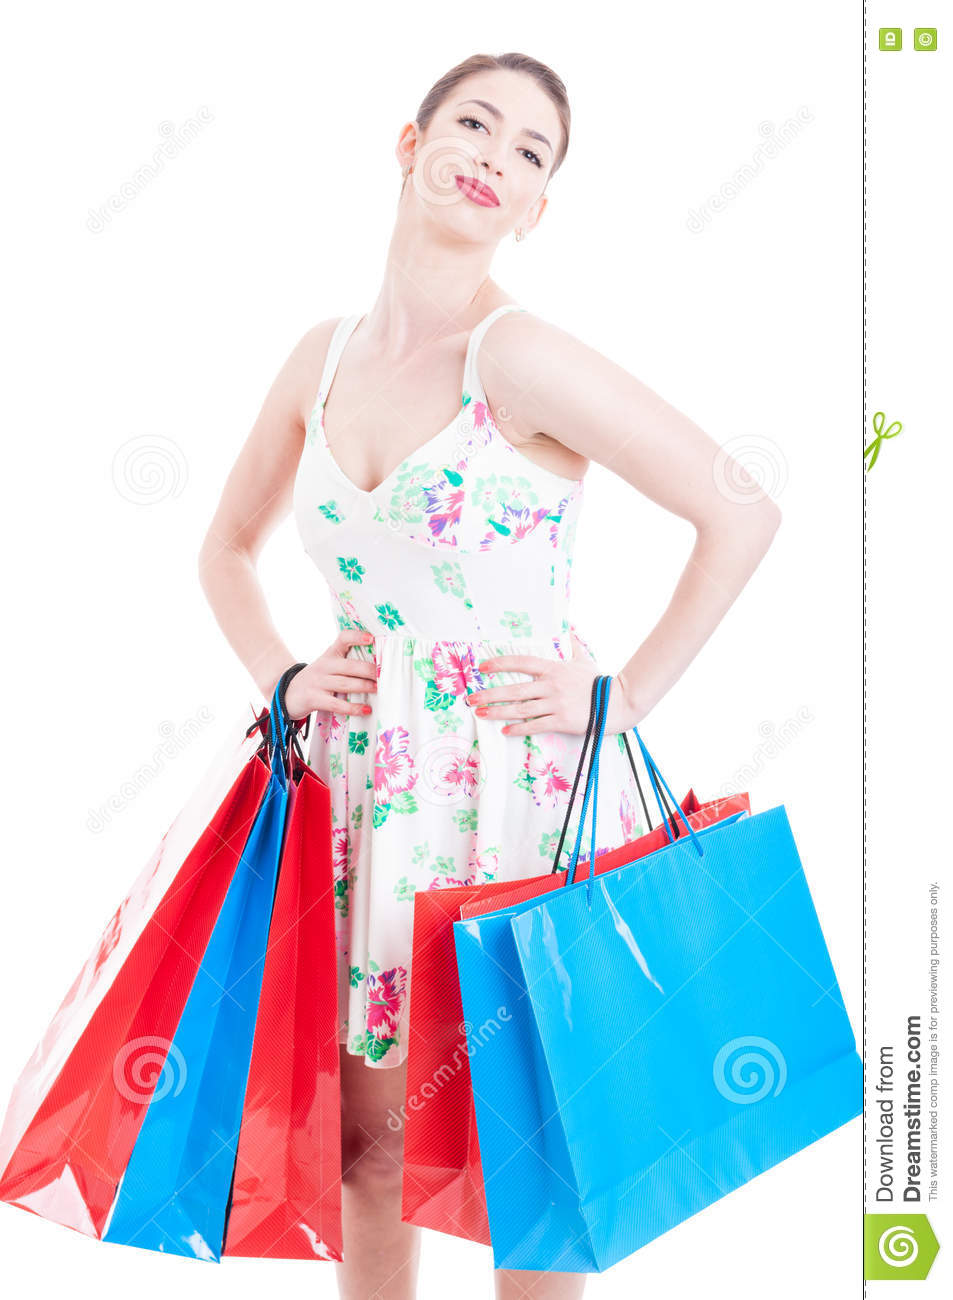 Woman posing with shopping bags isolated on white background full - Young Lady At Shopping Posing With Gift Bags